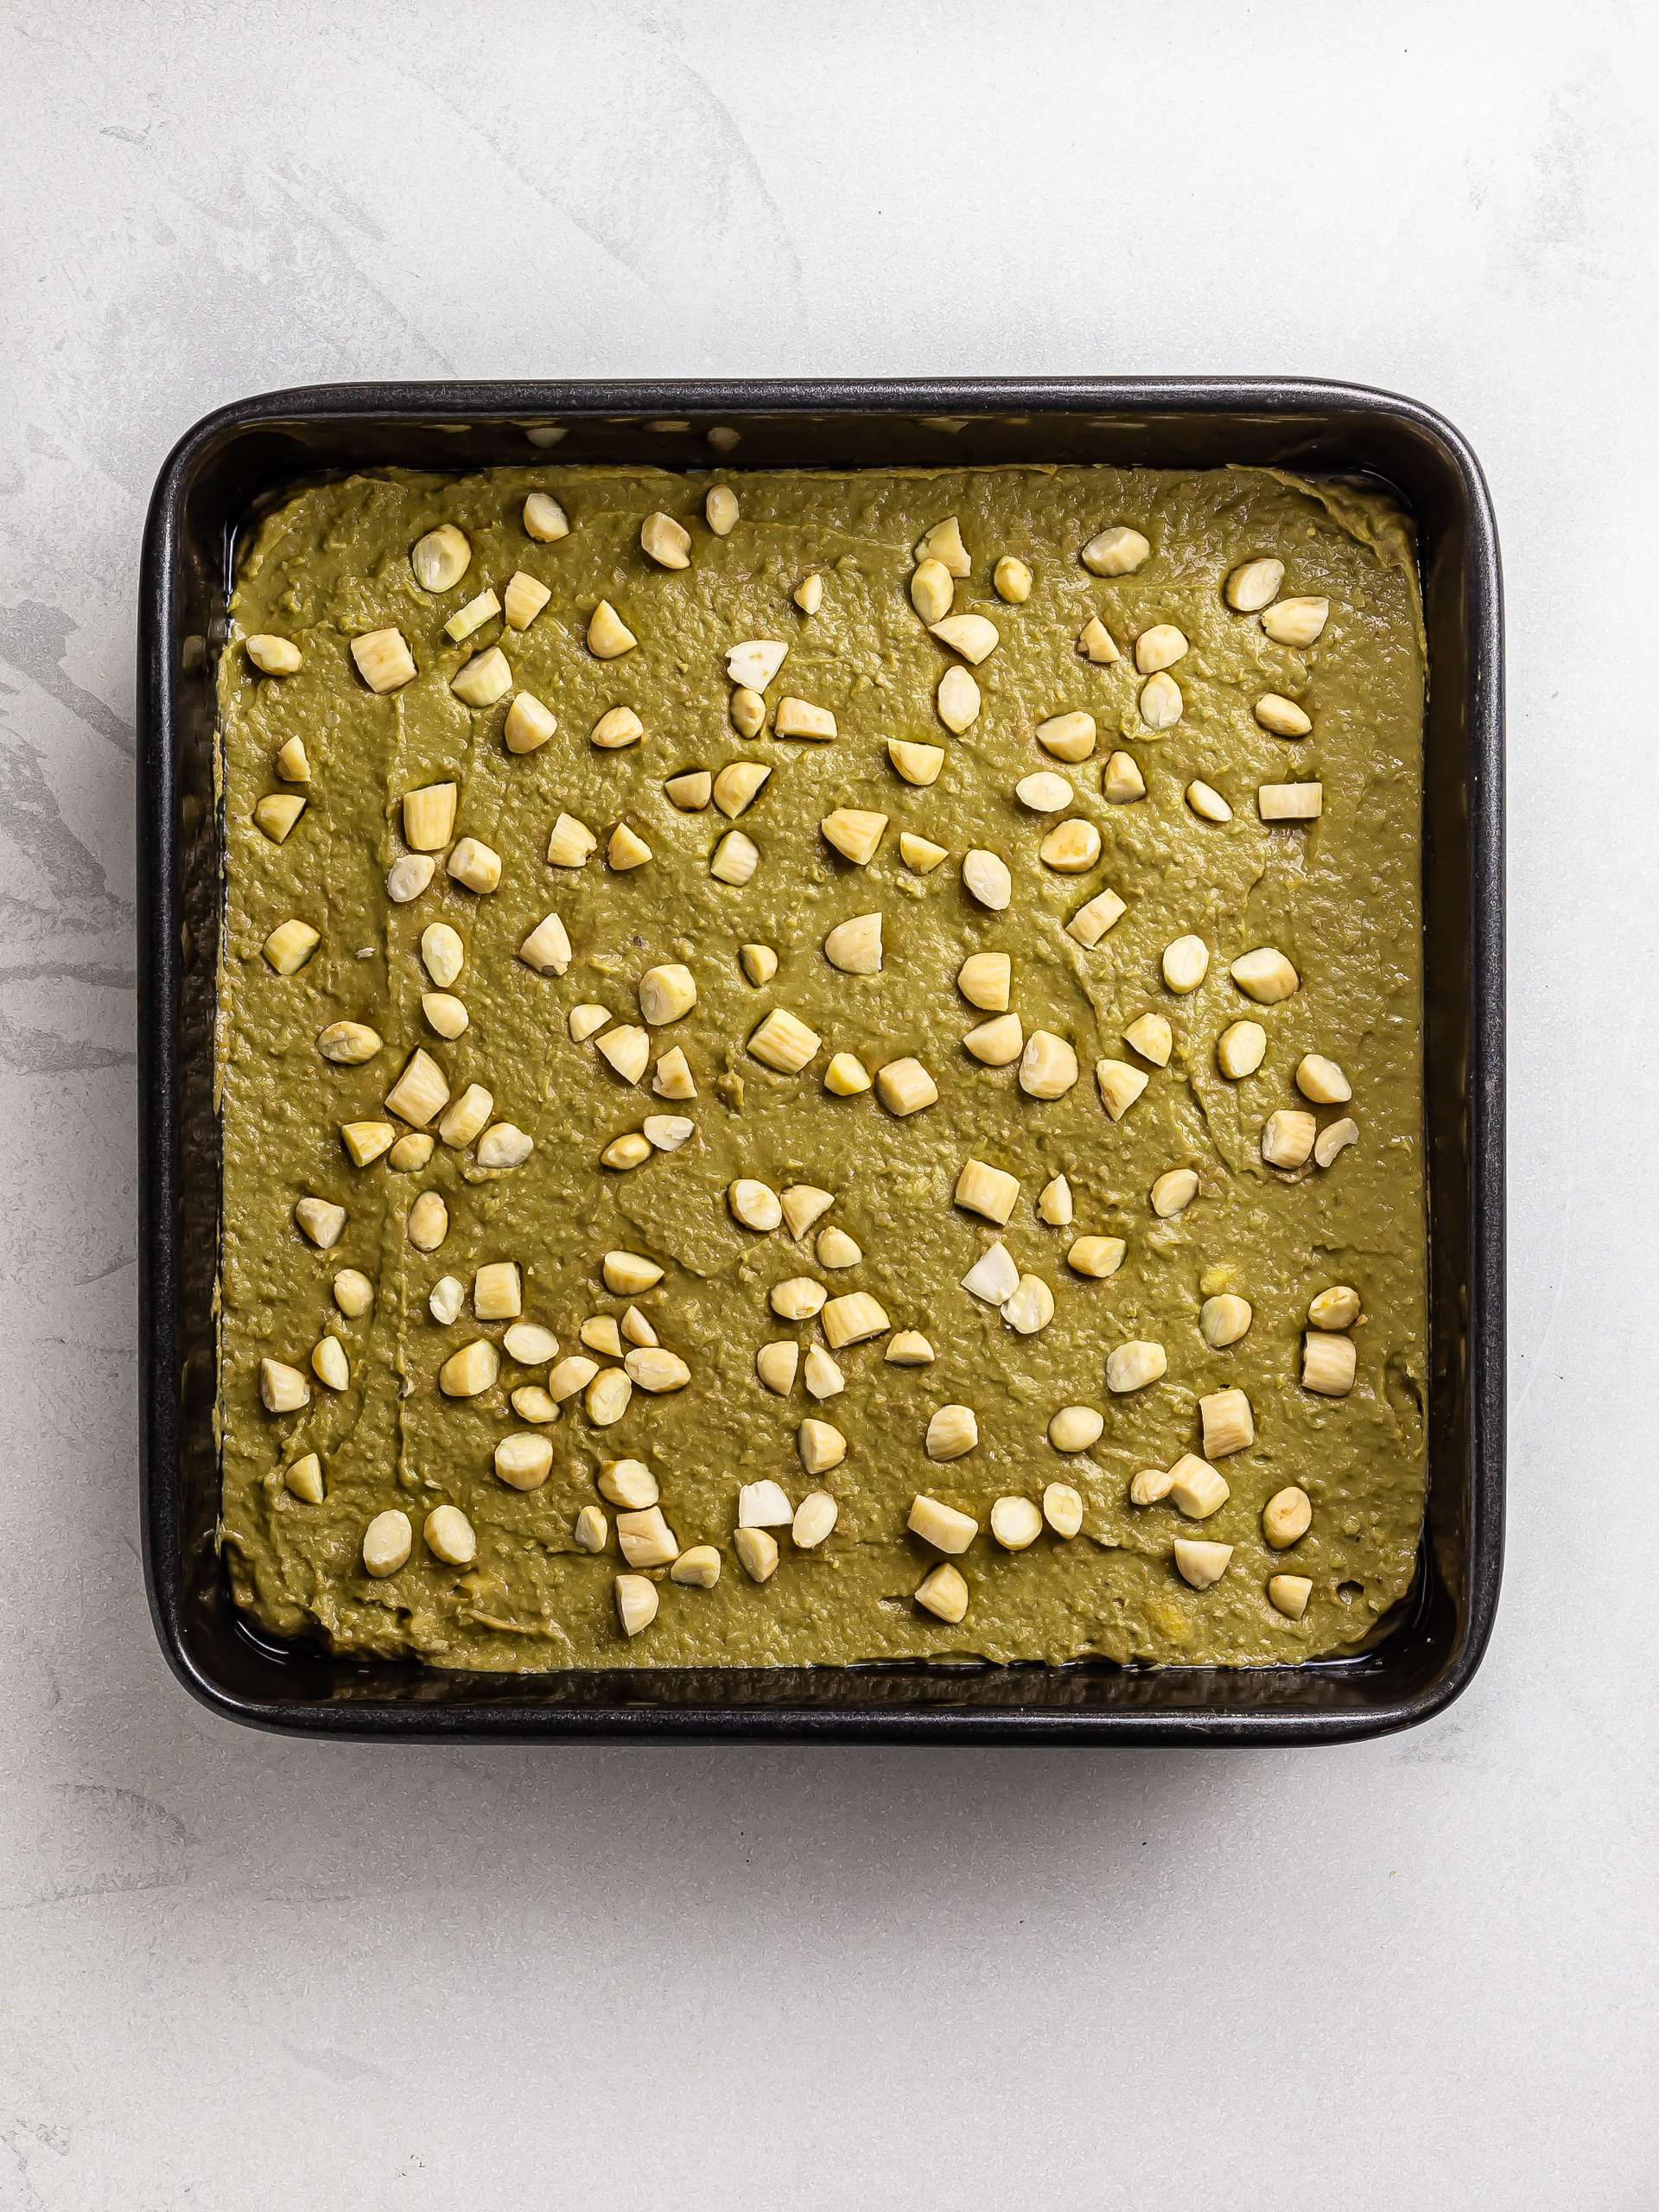 matcha brownies batter in a baking tin topped with almonds